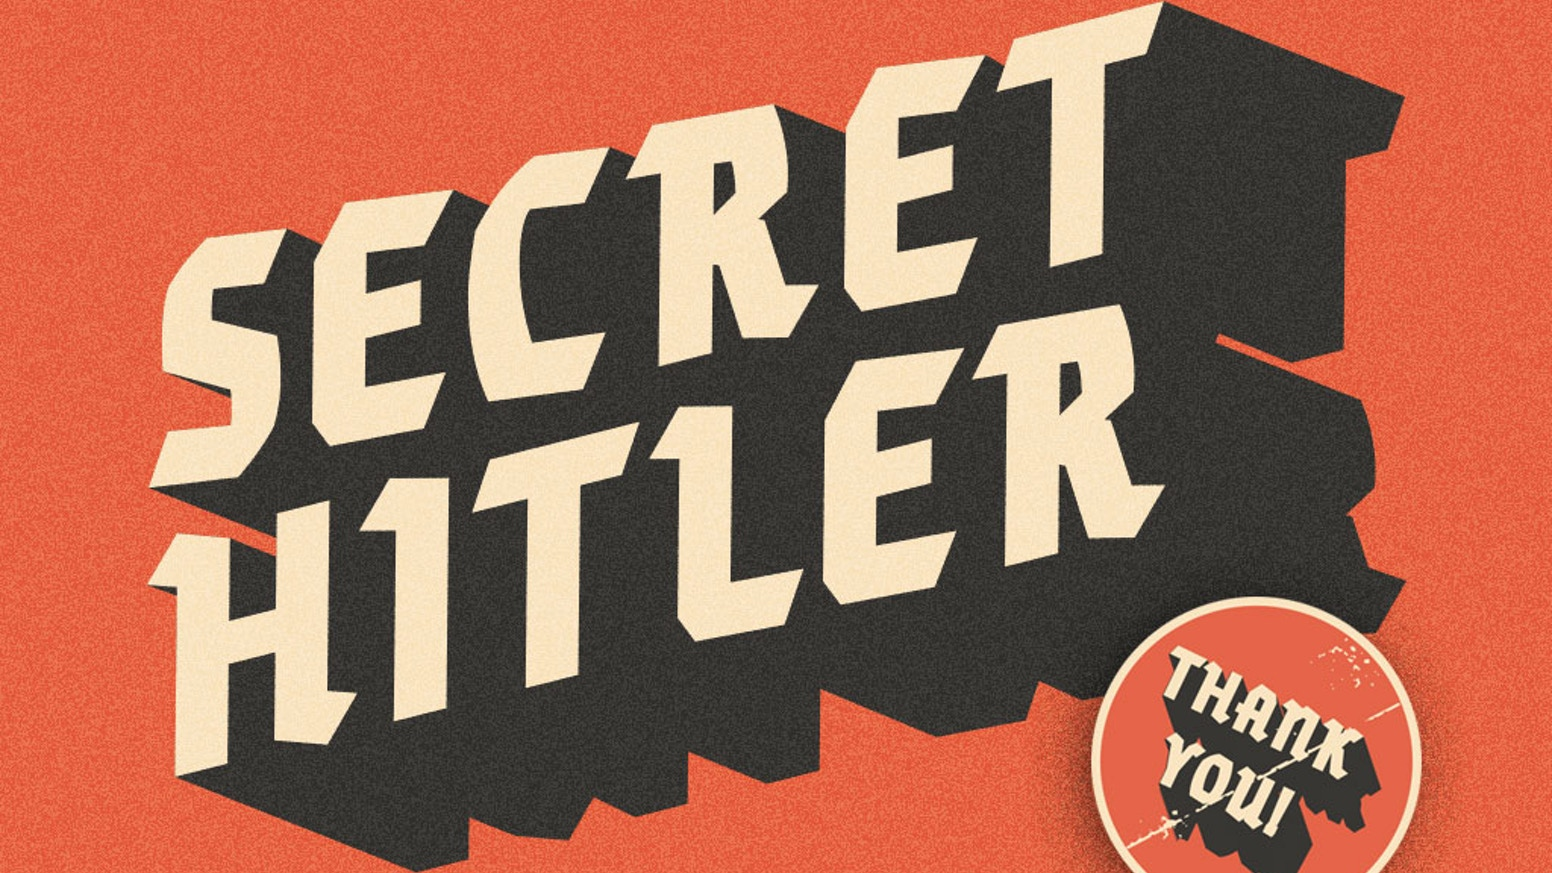 A social deduction game for 5-10 players about finding and stopping the Secret Hitler.